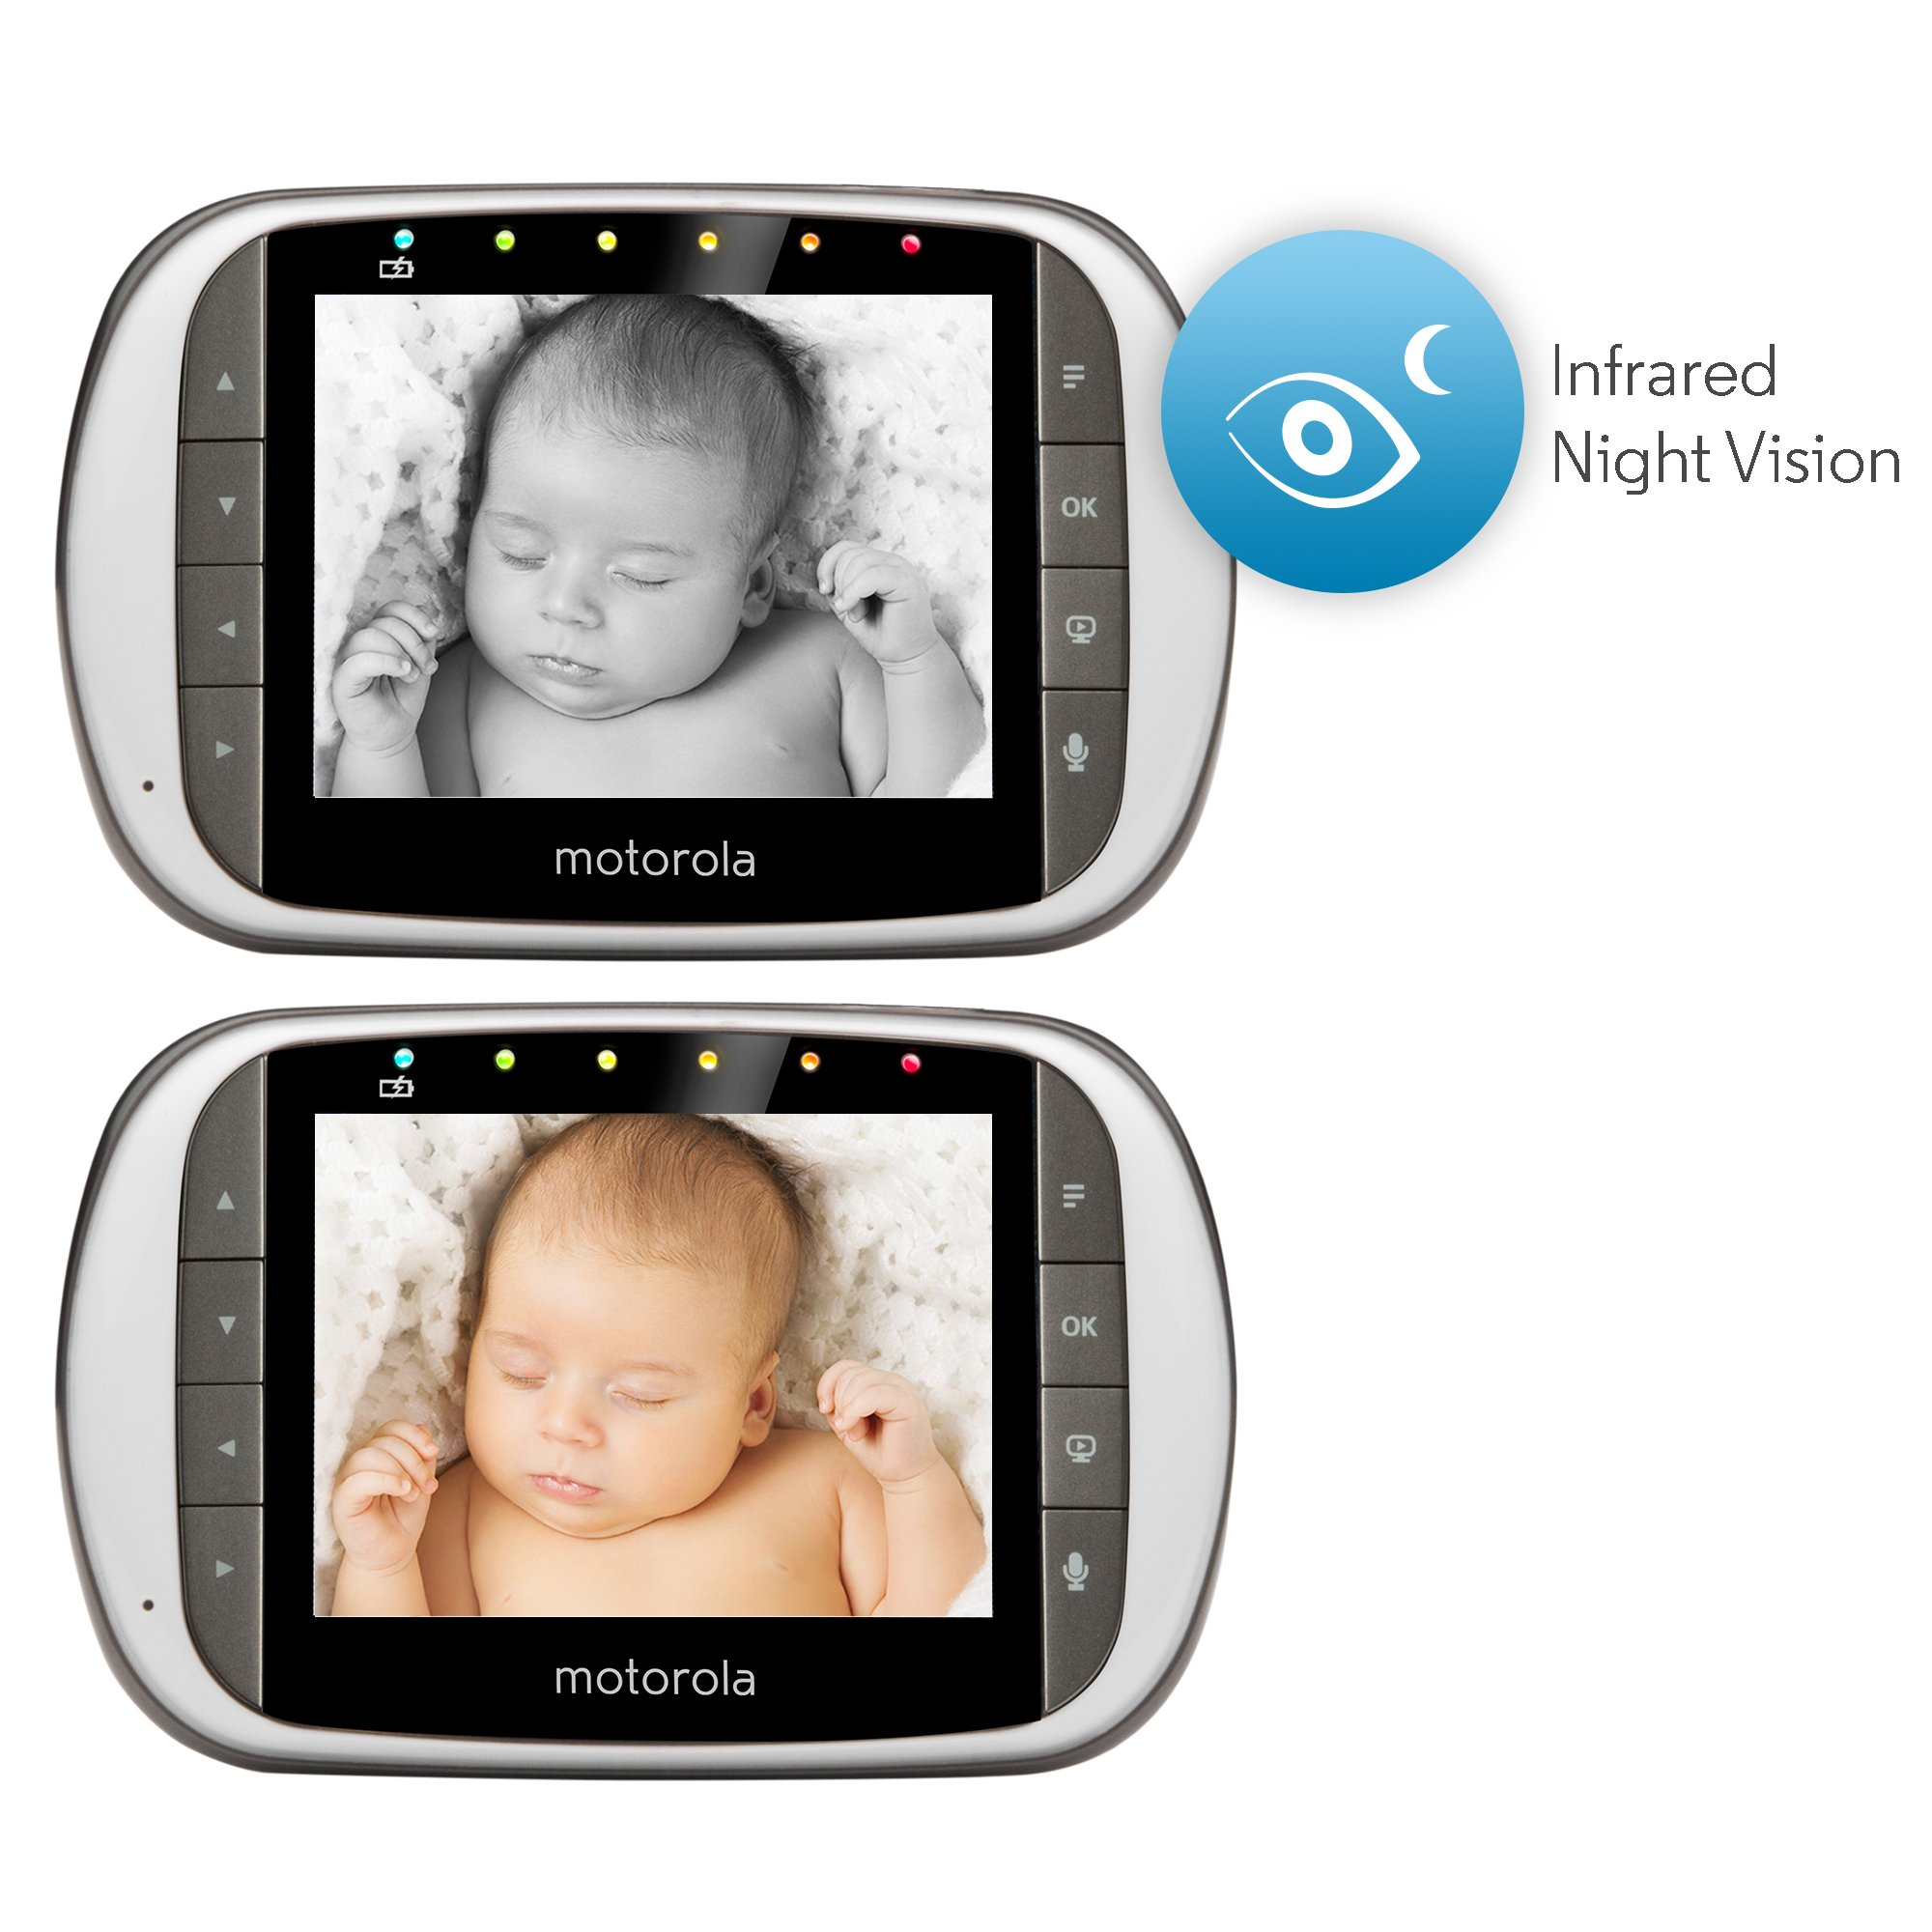 Motorola MBP853CONNECT-2 Dual Mode Baby Monitor with 2 Cameras and 3.5-Inch LCD Parent Monitor and Wi-Fi Internet Viewing by Motorola Baby (Image #6)